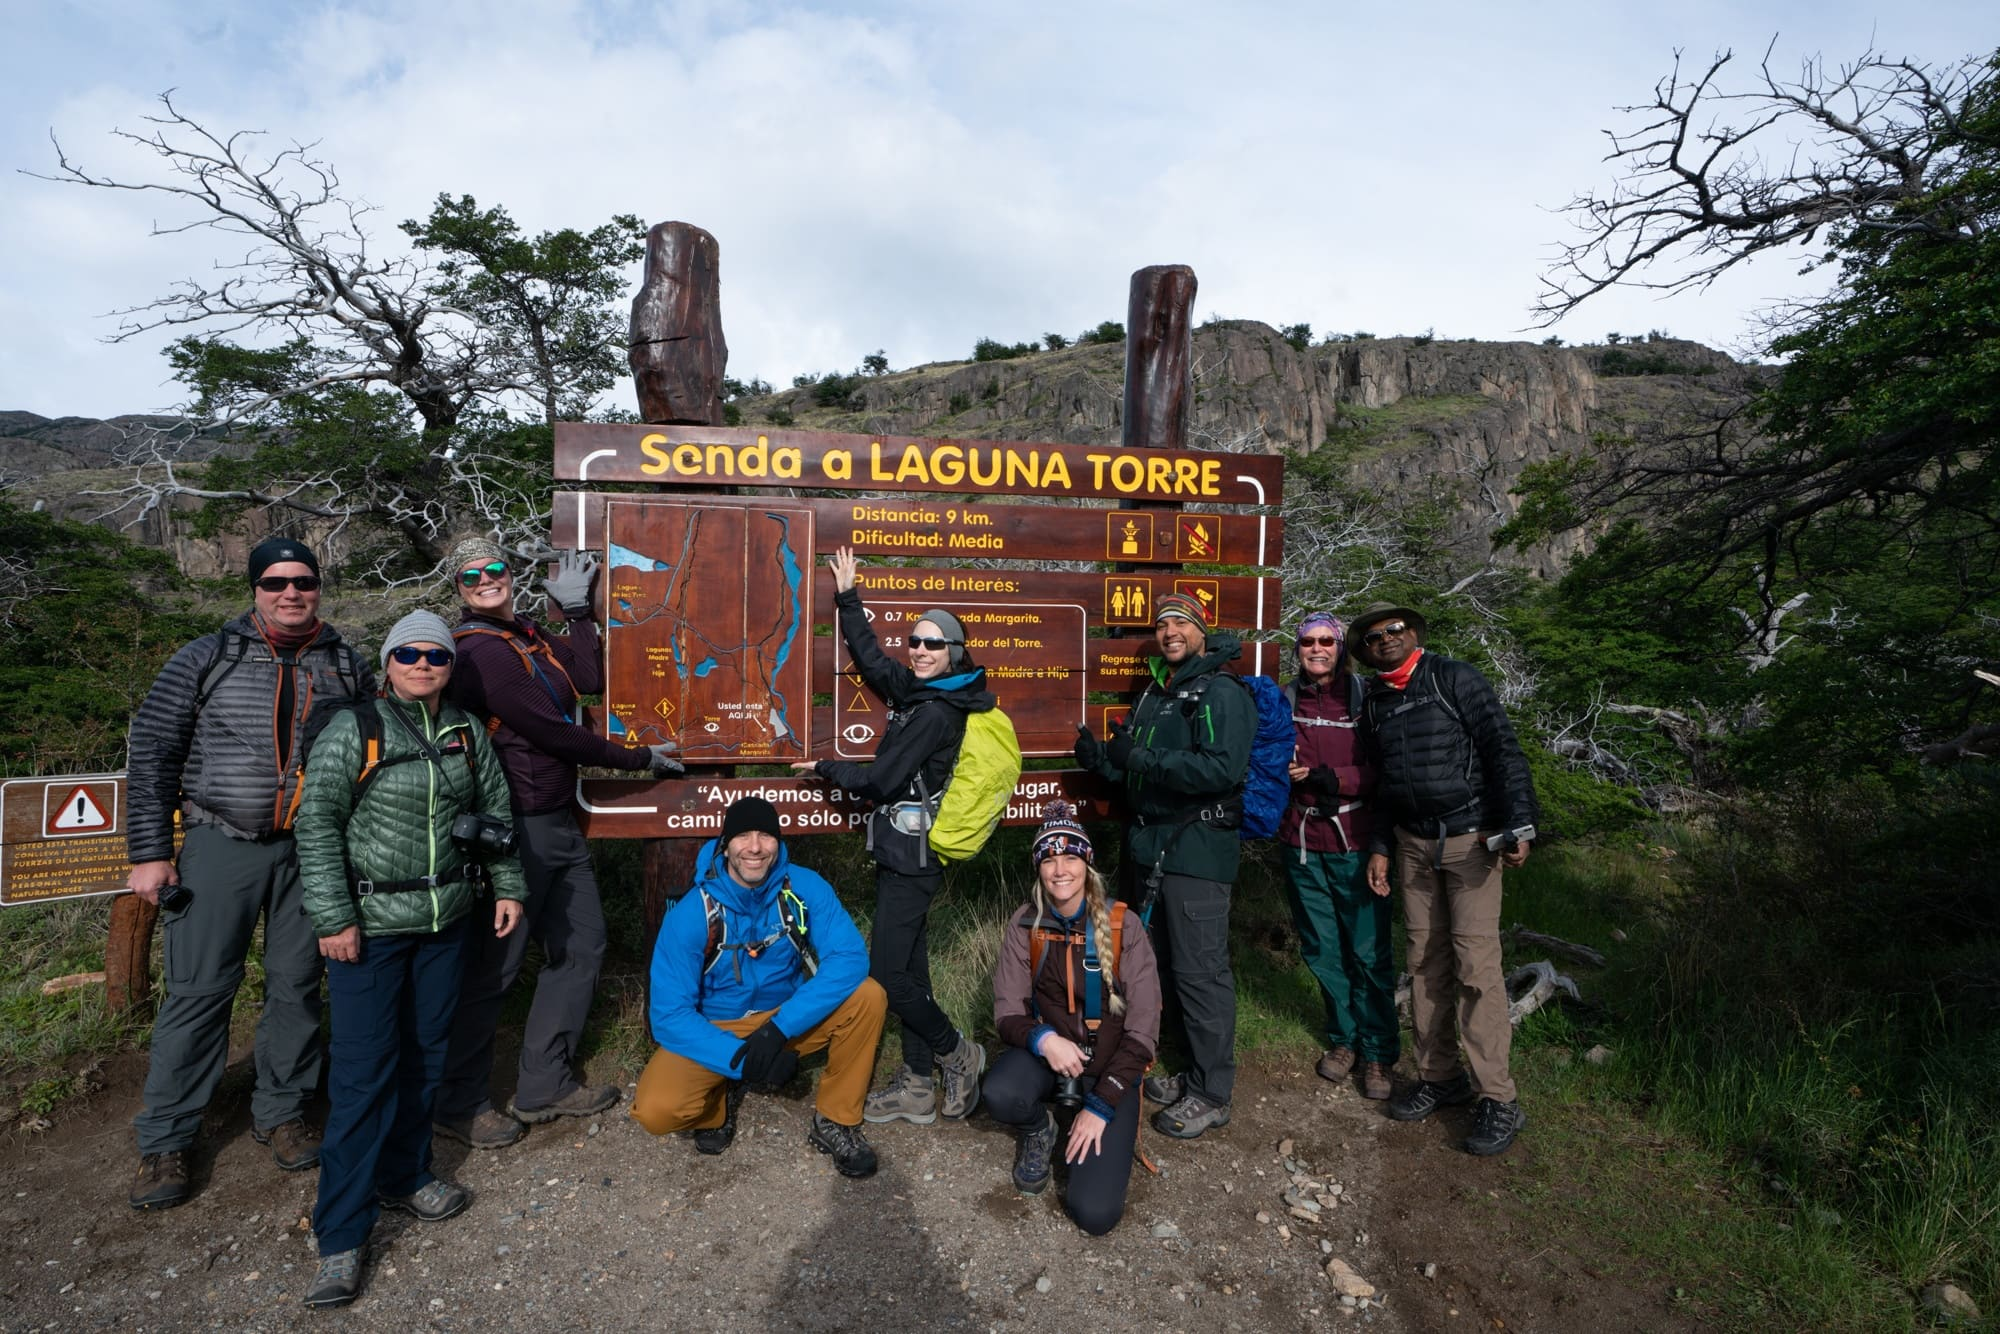 El Chalten, Argentina is great for hiking, white water rafting and sight seeing. Our El Chalten itinerary will get you outdoors exploring Patagonia.